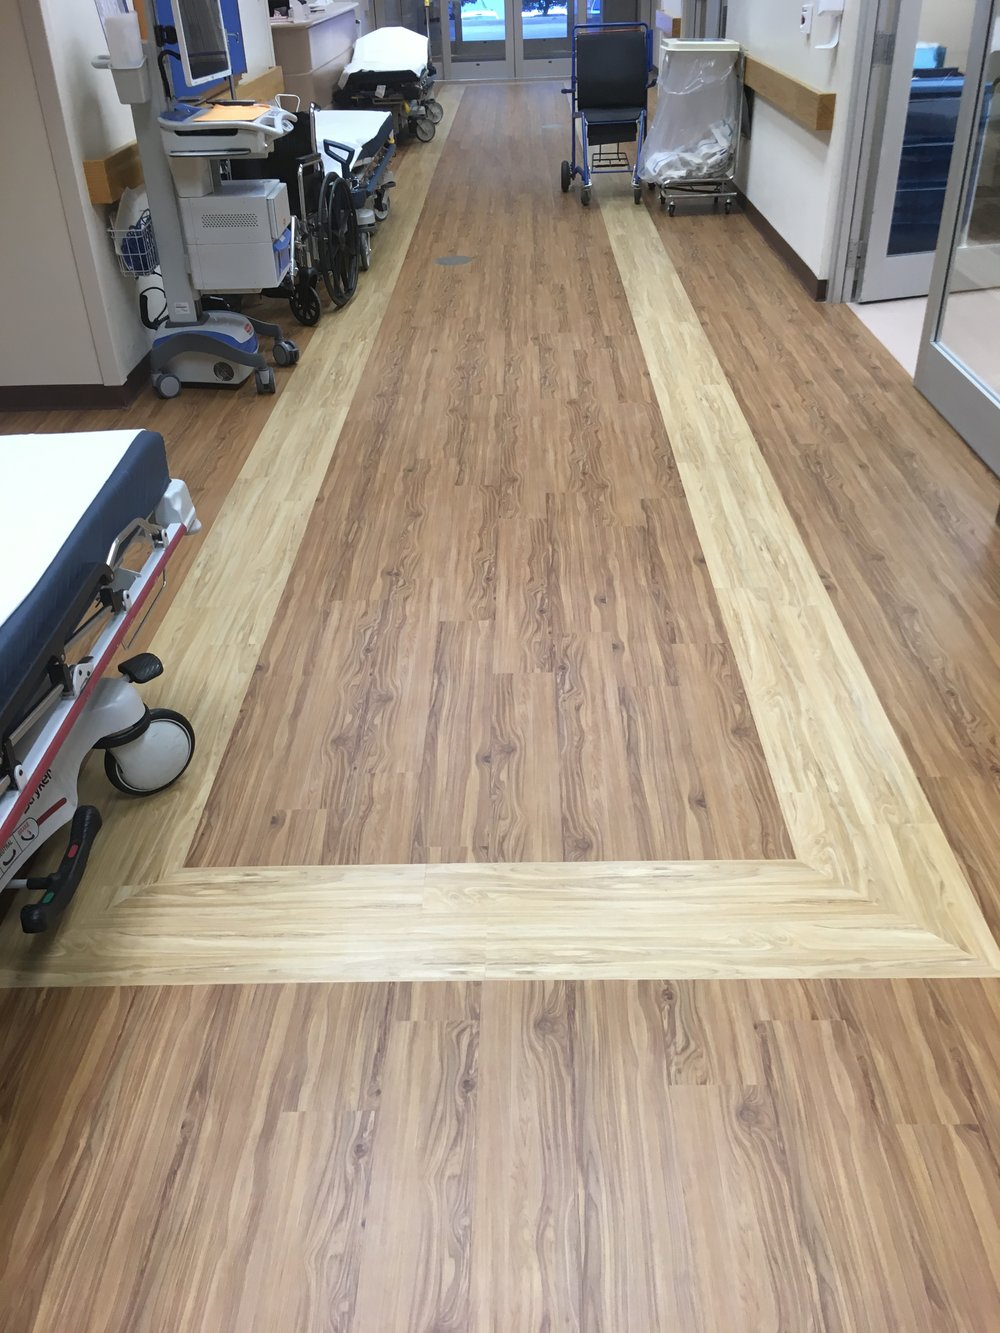 1 Greensboro Hospital SilverTech LVT.JPG